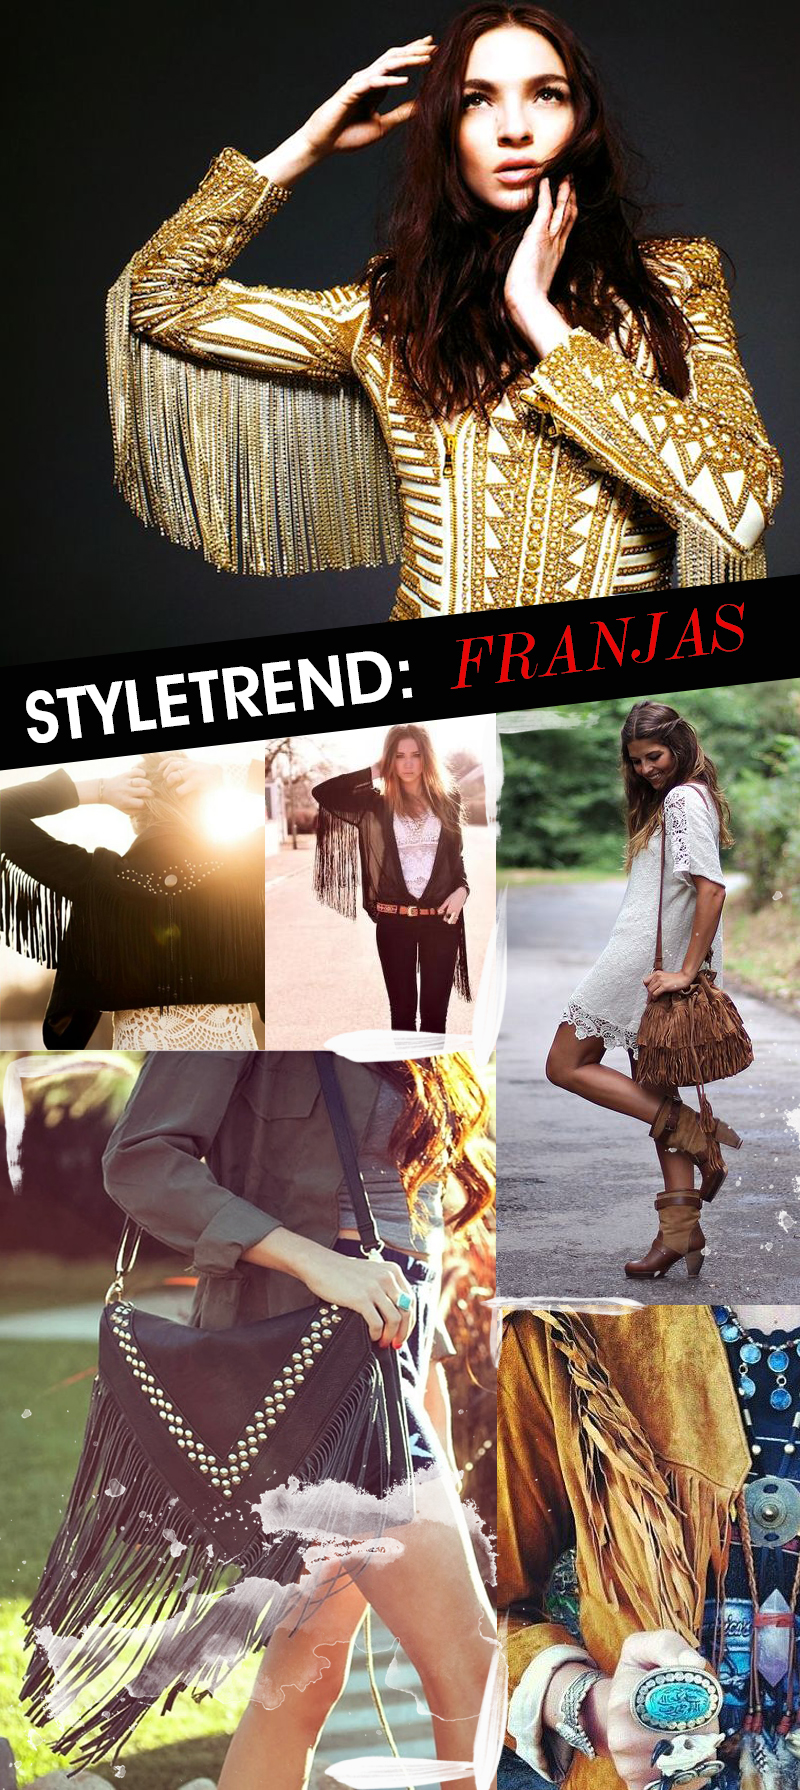 We Fashion Trends Moda Style Trend Franjas nas Roupas